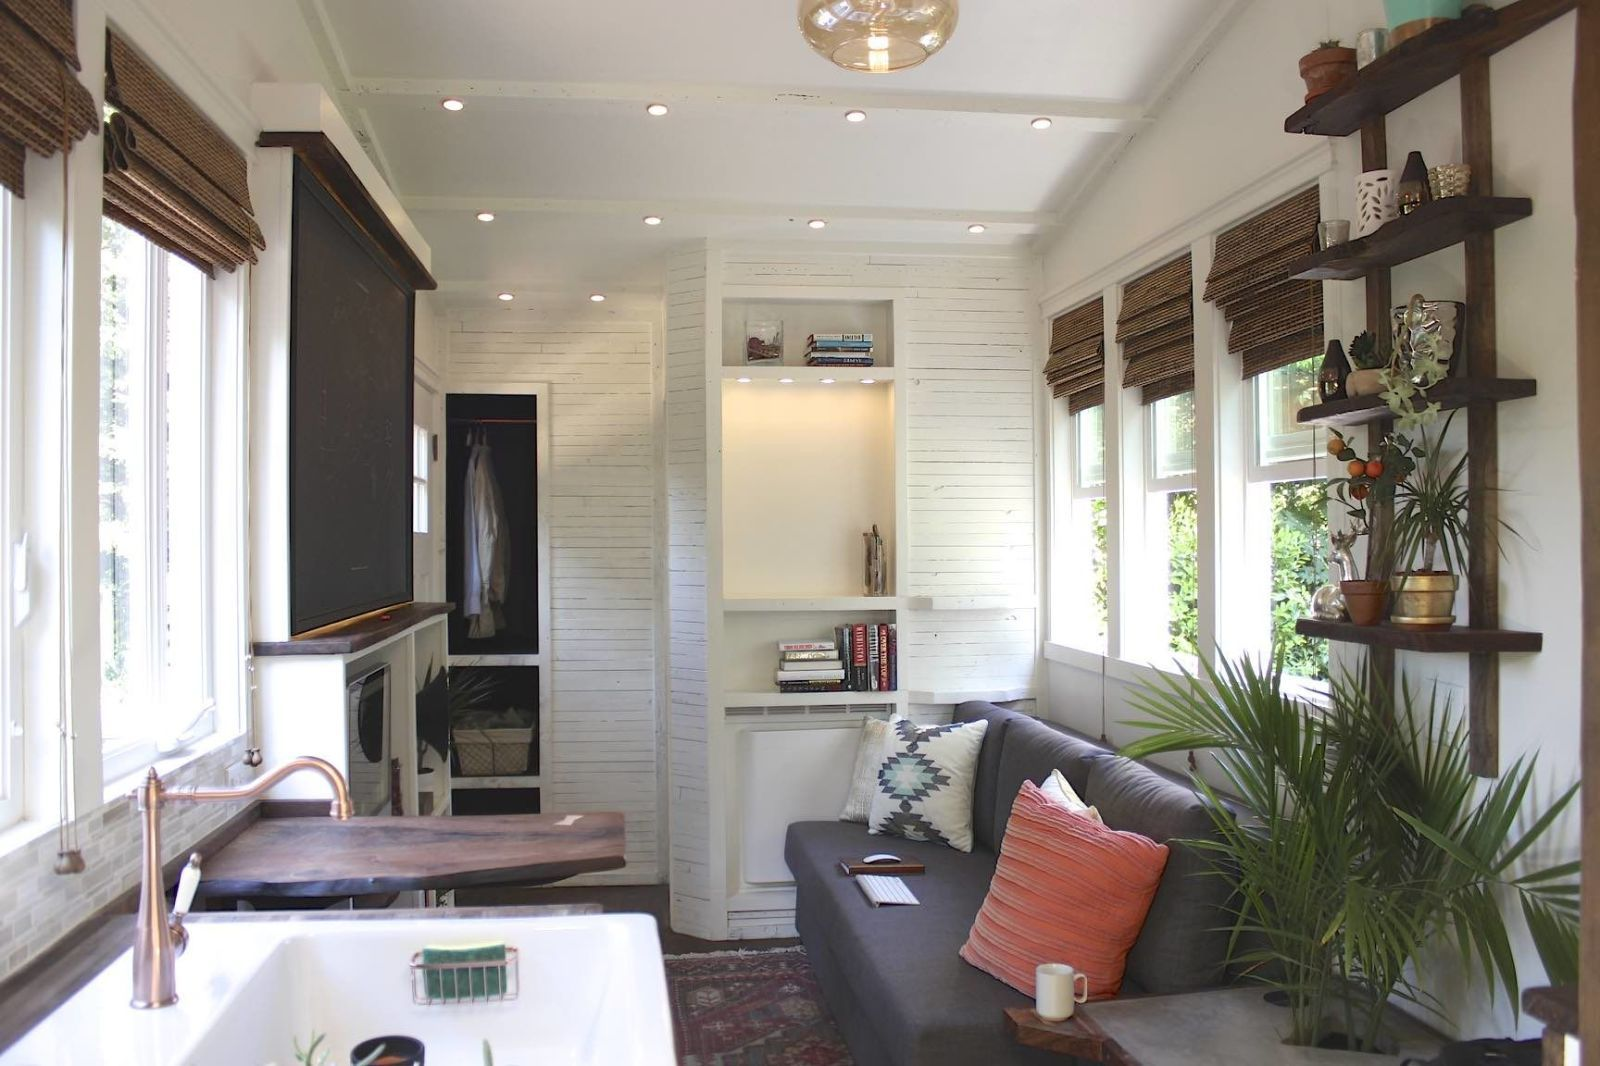 Mobile home garden tub   Best images about Tiny Houses on the Beach on Pinterest  Beach